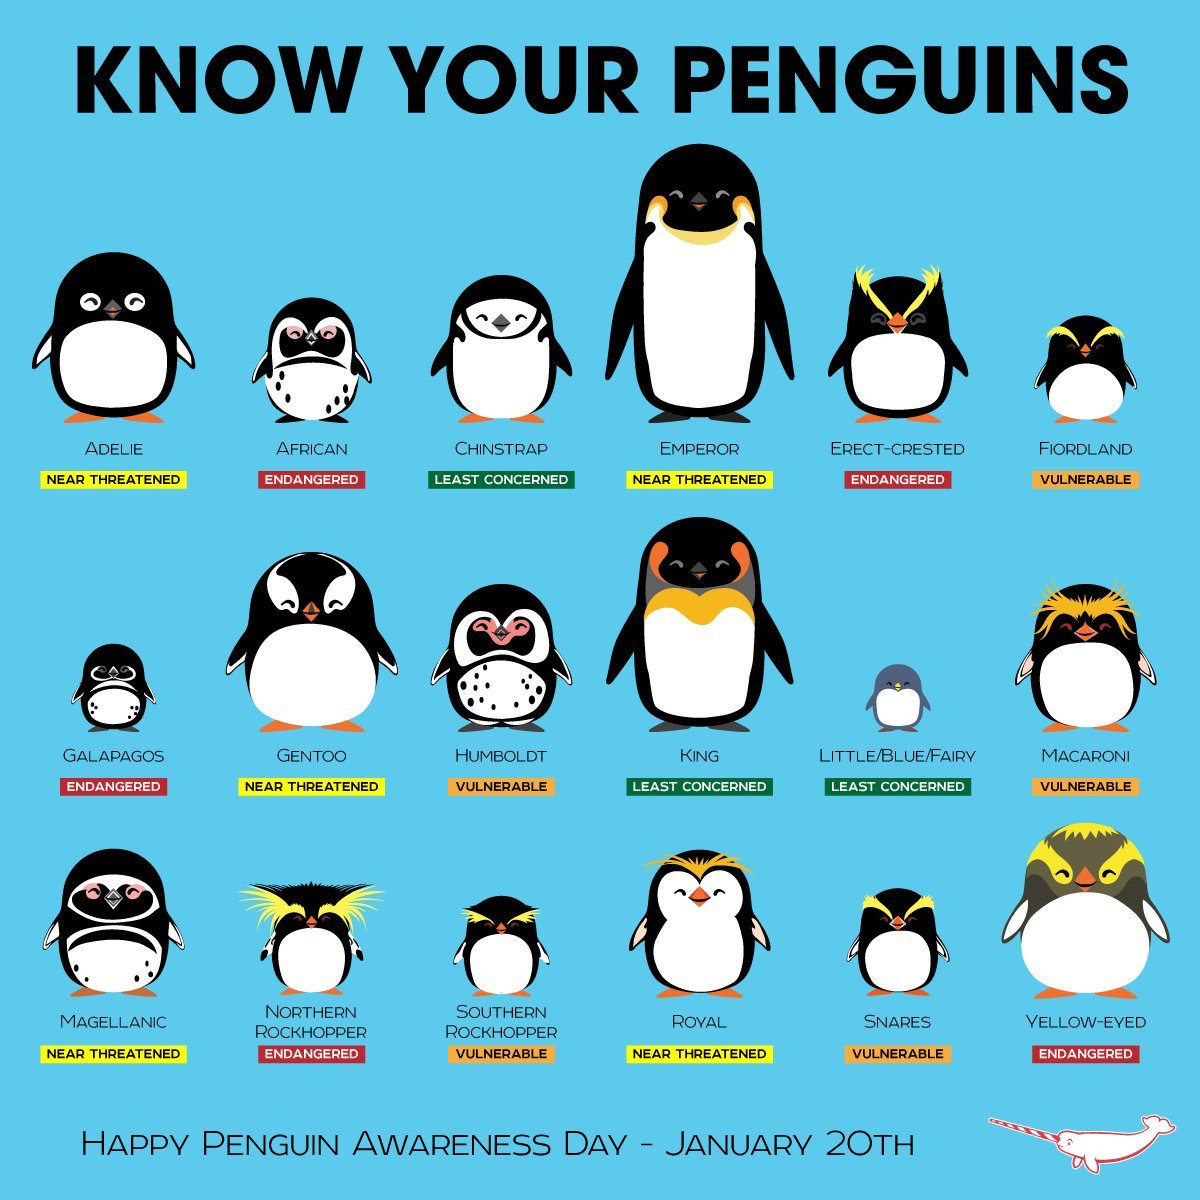 Know Your Penguins - From @Linux Tweeter feed